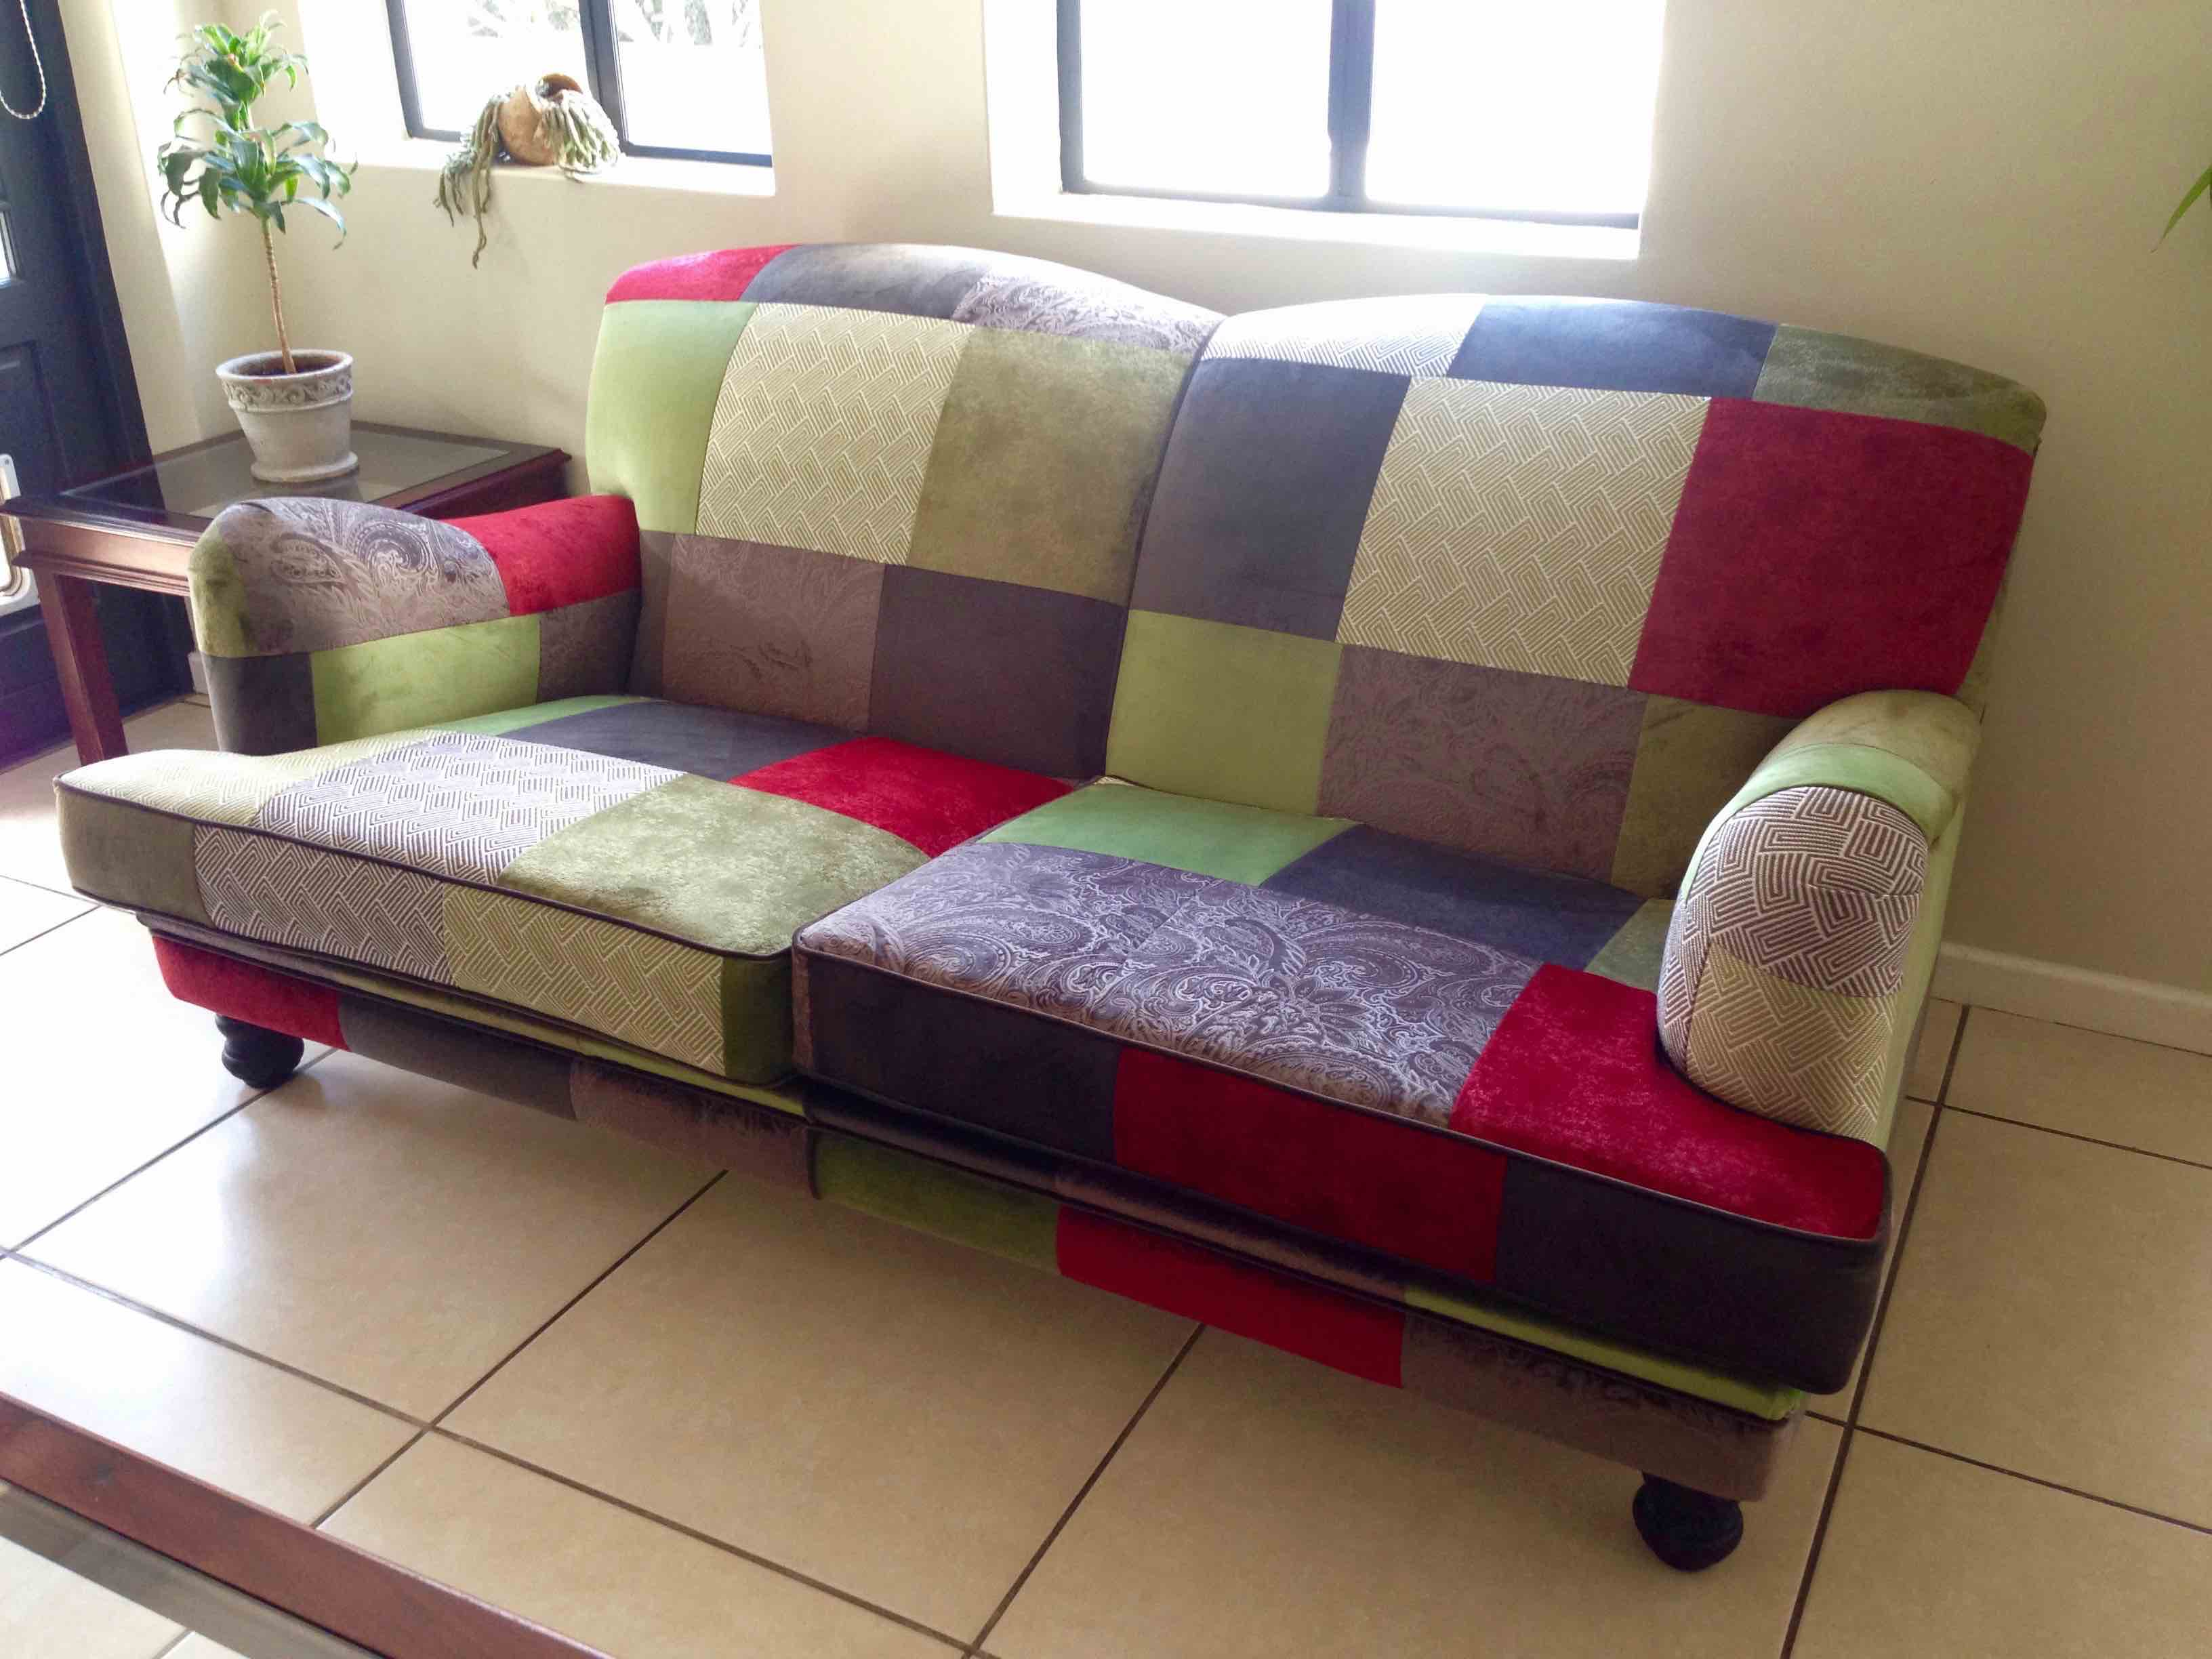 sofa reupholstery cost sydney curved sectional living room couch jags furniture